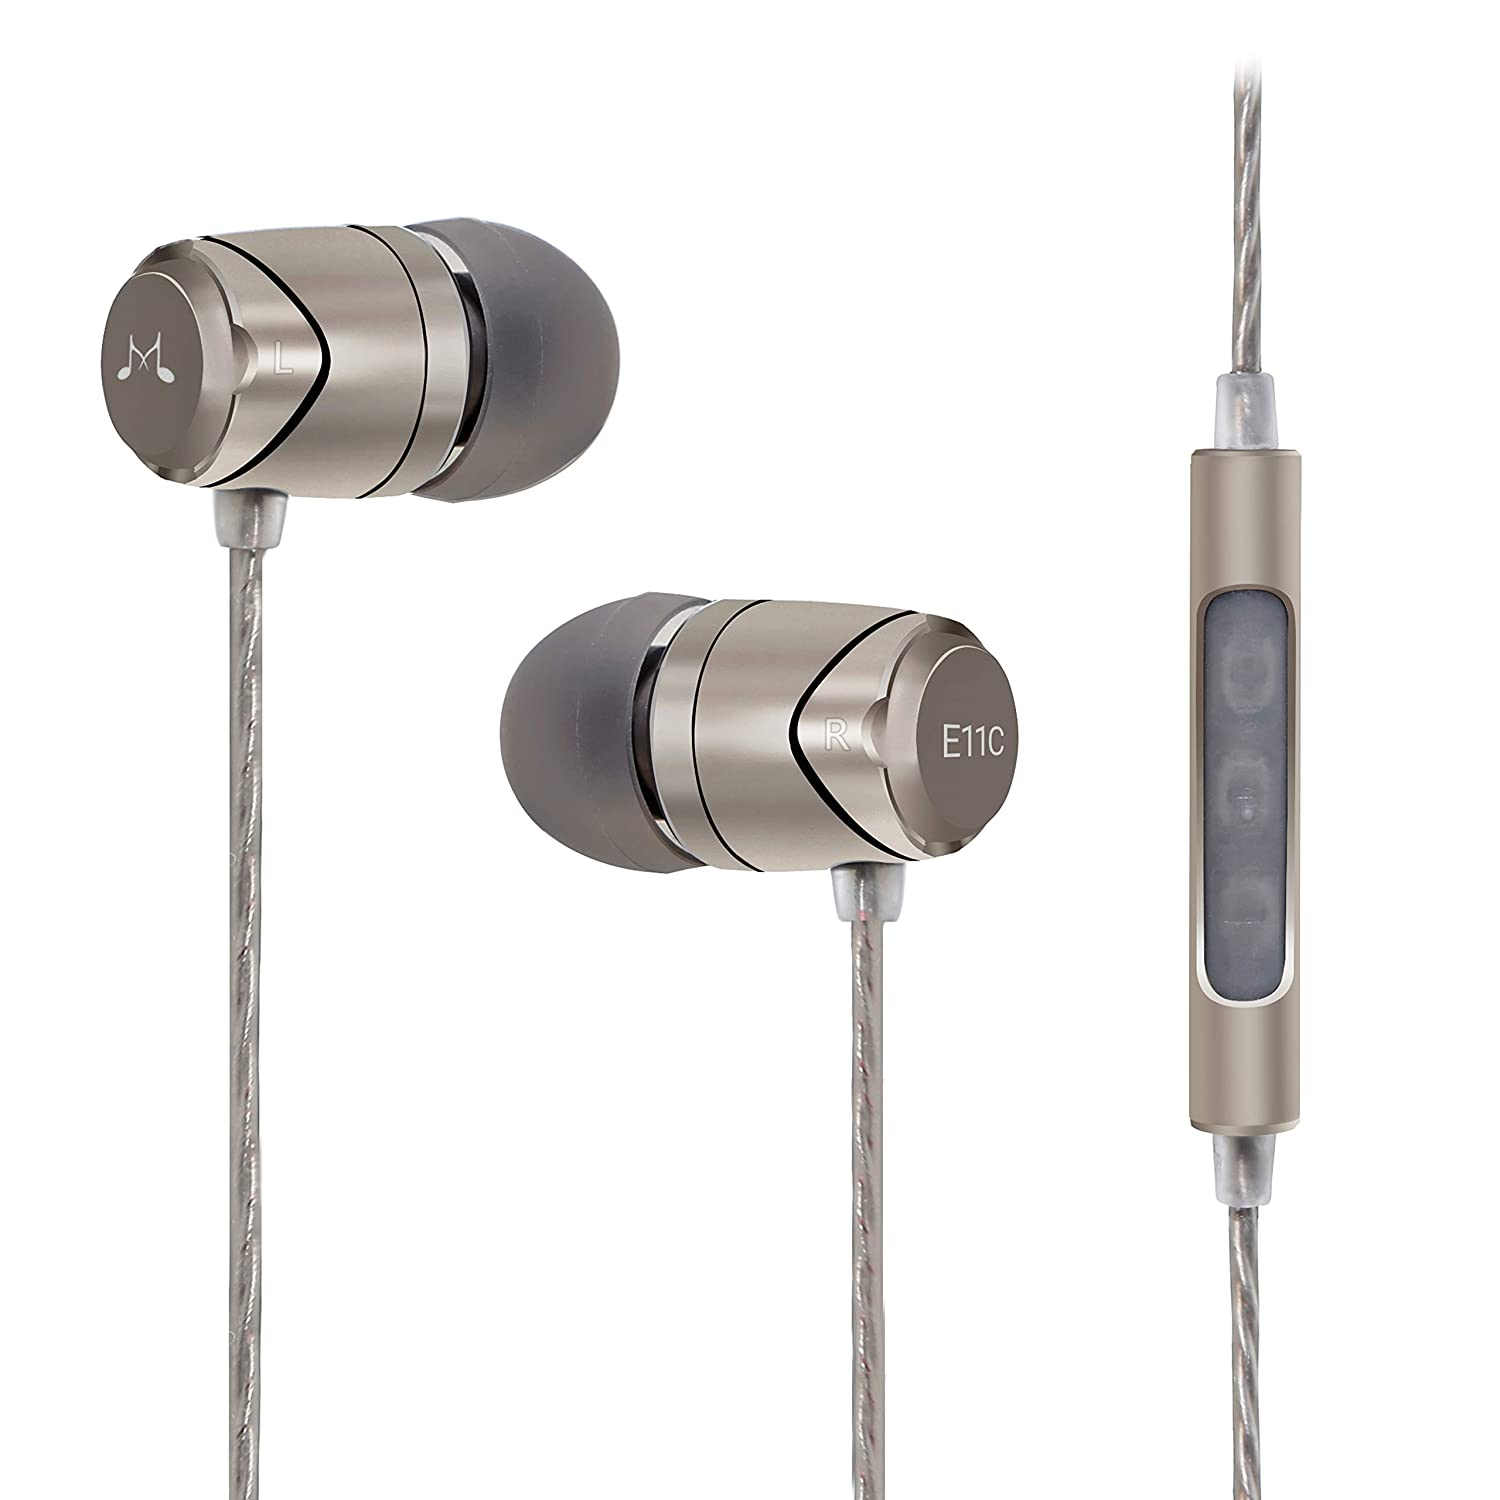 SoundMAGIC E11C Earphones Wired Noise Isolating in-Ear Earbuds Powerful Bass HiFi Stereo Sport Headphones with Microphone Gunmetal